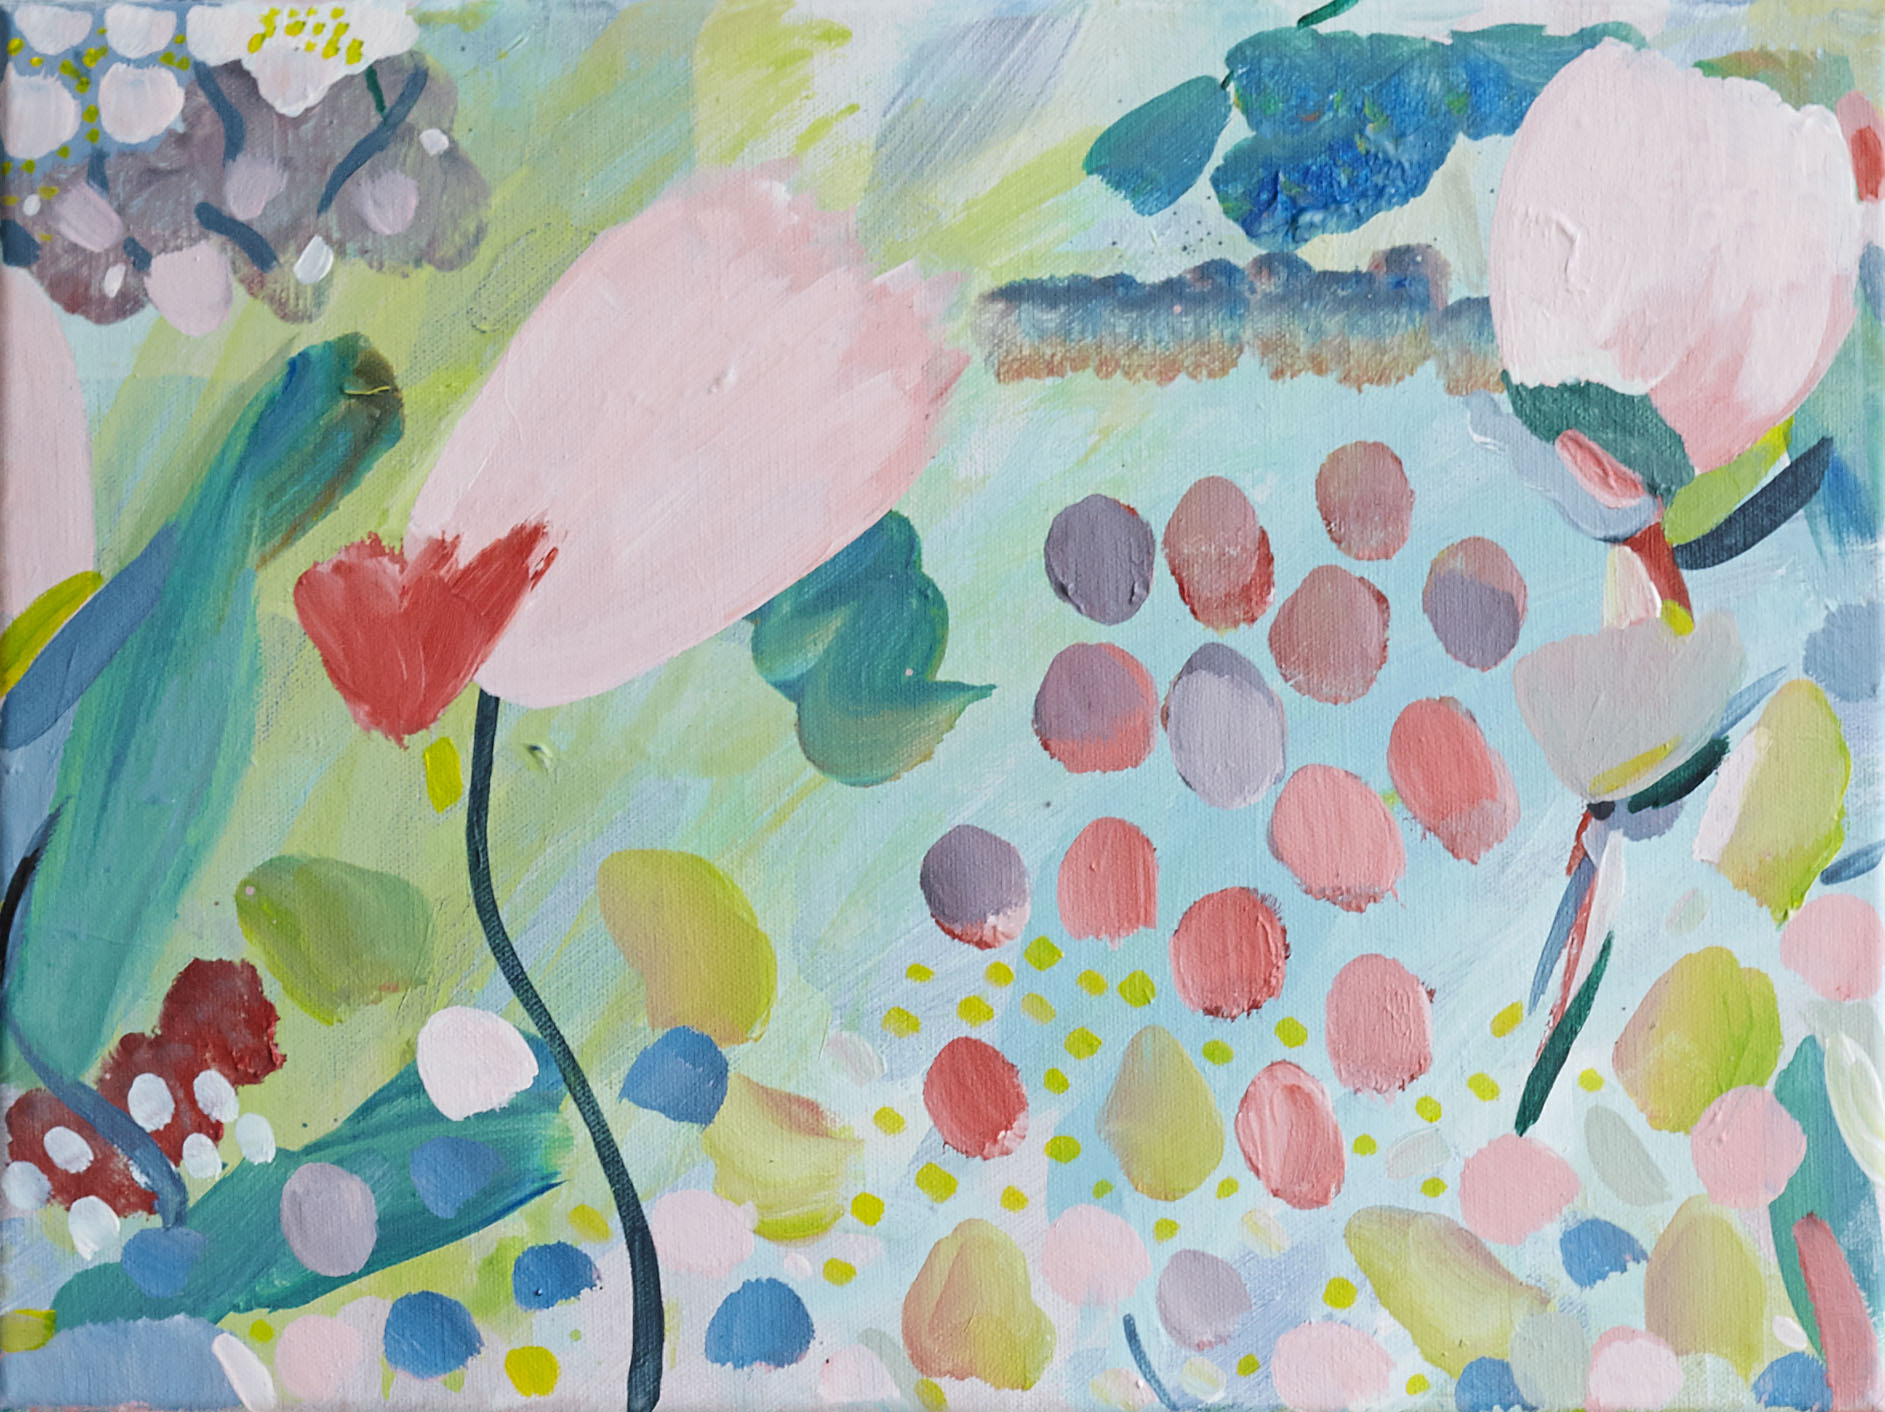 'Joy is Here'  30x40cm acrylic on canvas (sold)